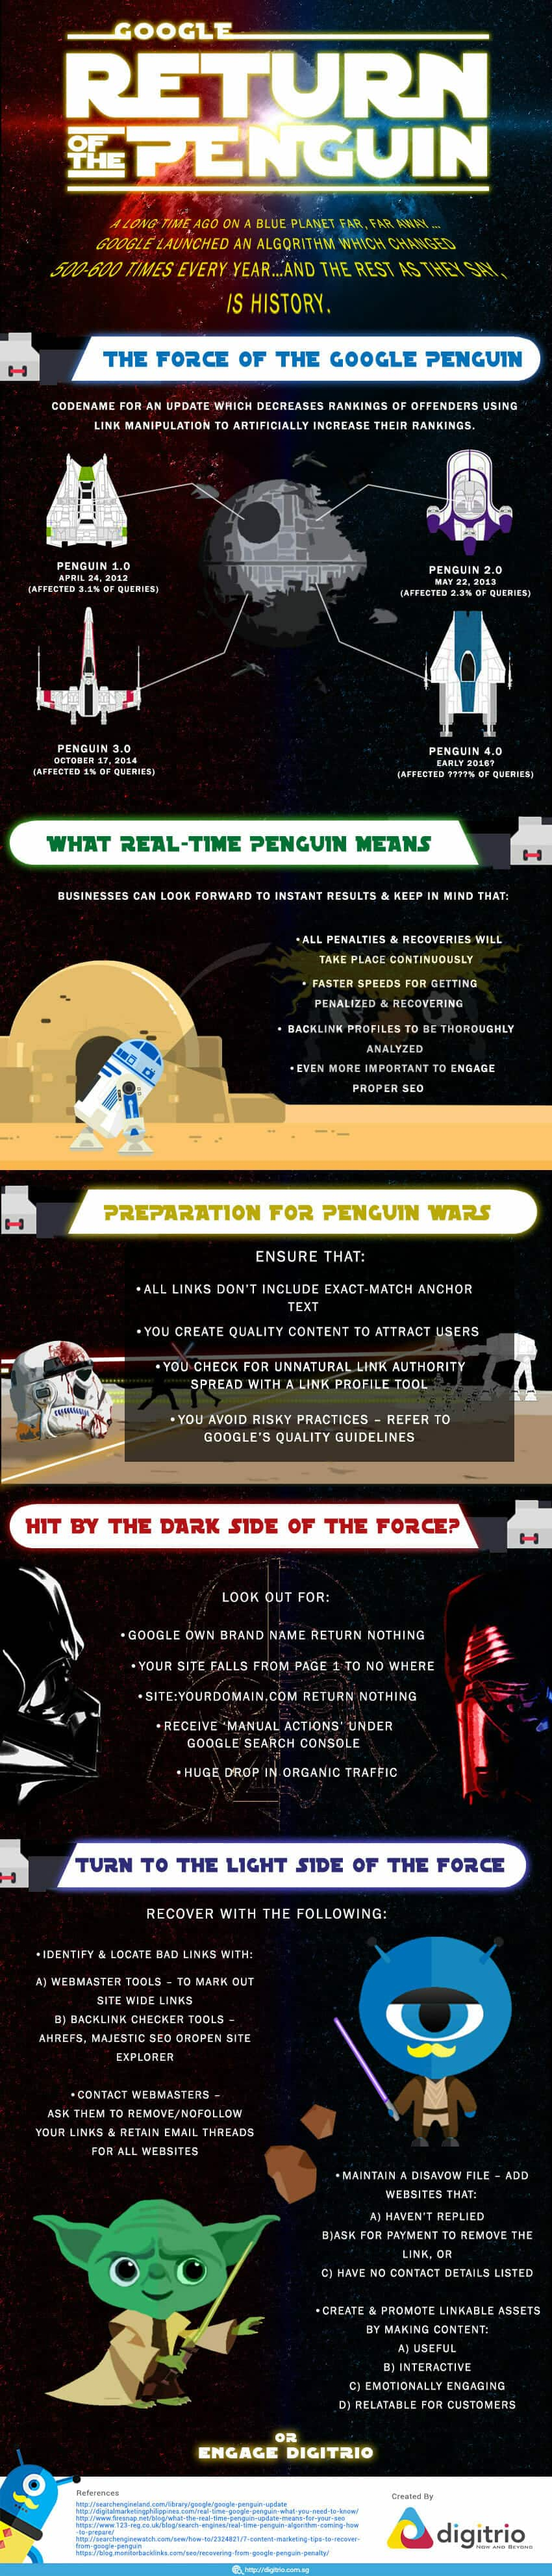 Starwars- Google Penguin 4.0 Infographic